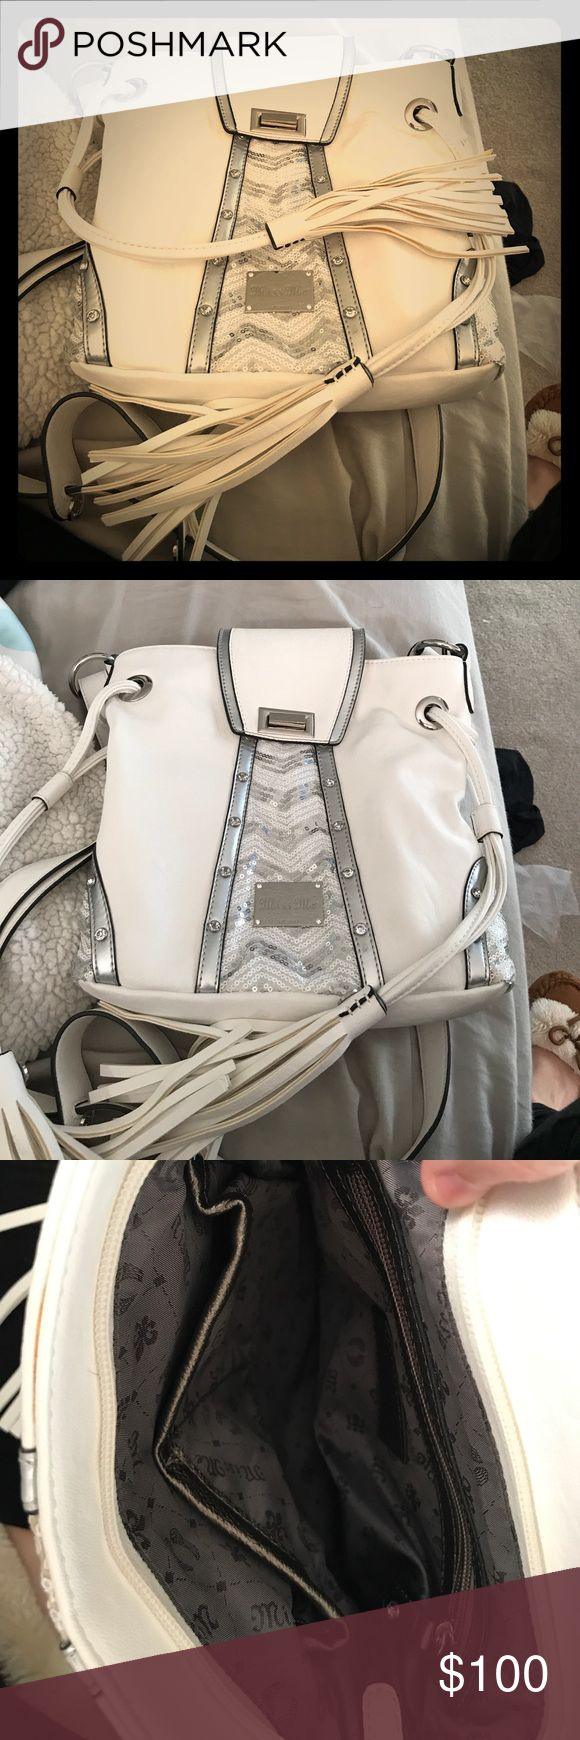 Miss Me purse White sparkly miss me purse. I paid $120. asking $100 but willing to negotiate. It's in excellent condition. Used twice. Miss Me Bags Satchels